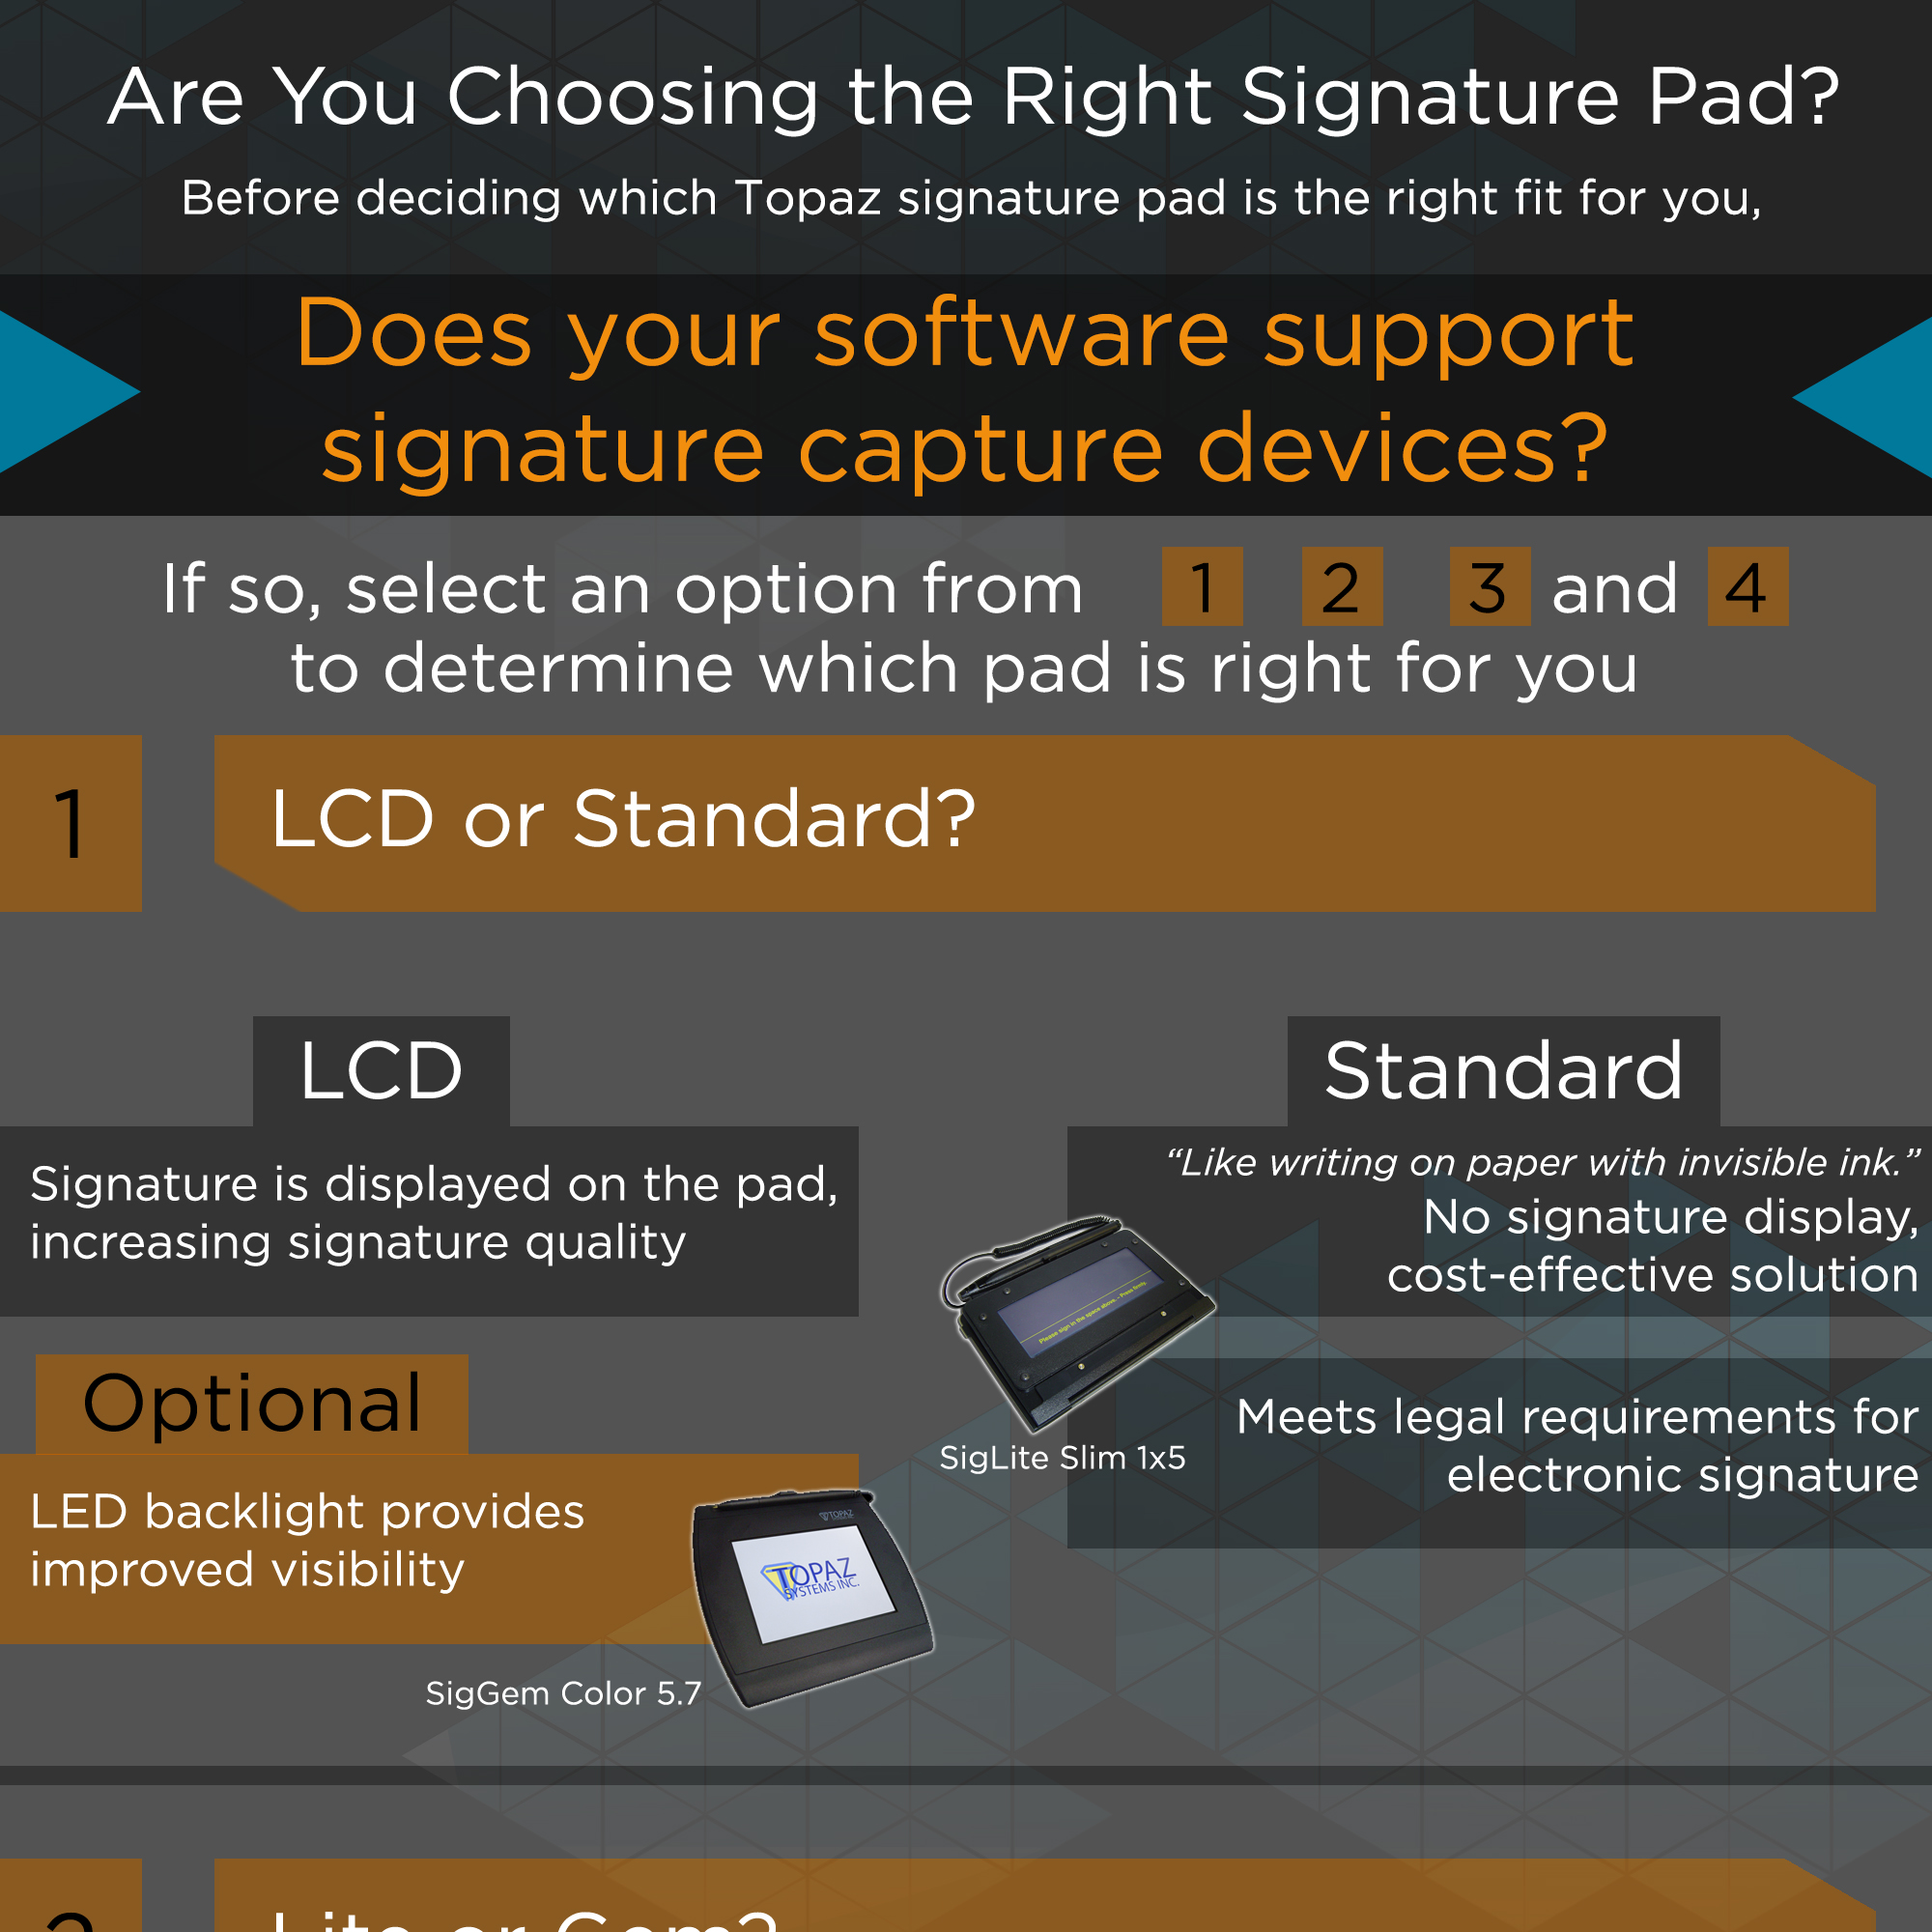 Are You Choosing the Right Topaz Signature Pad? | L-Tron